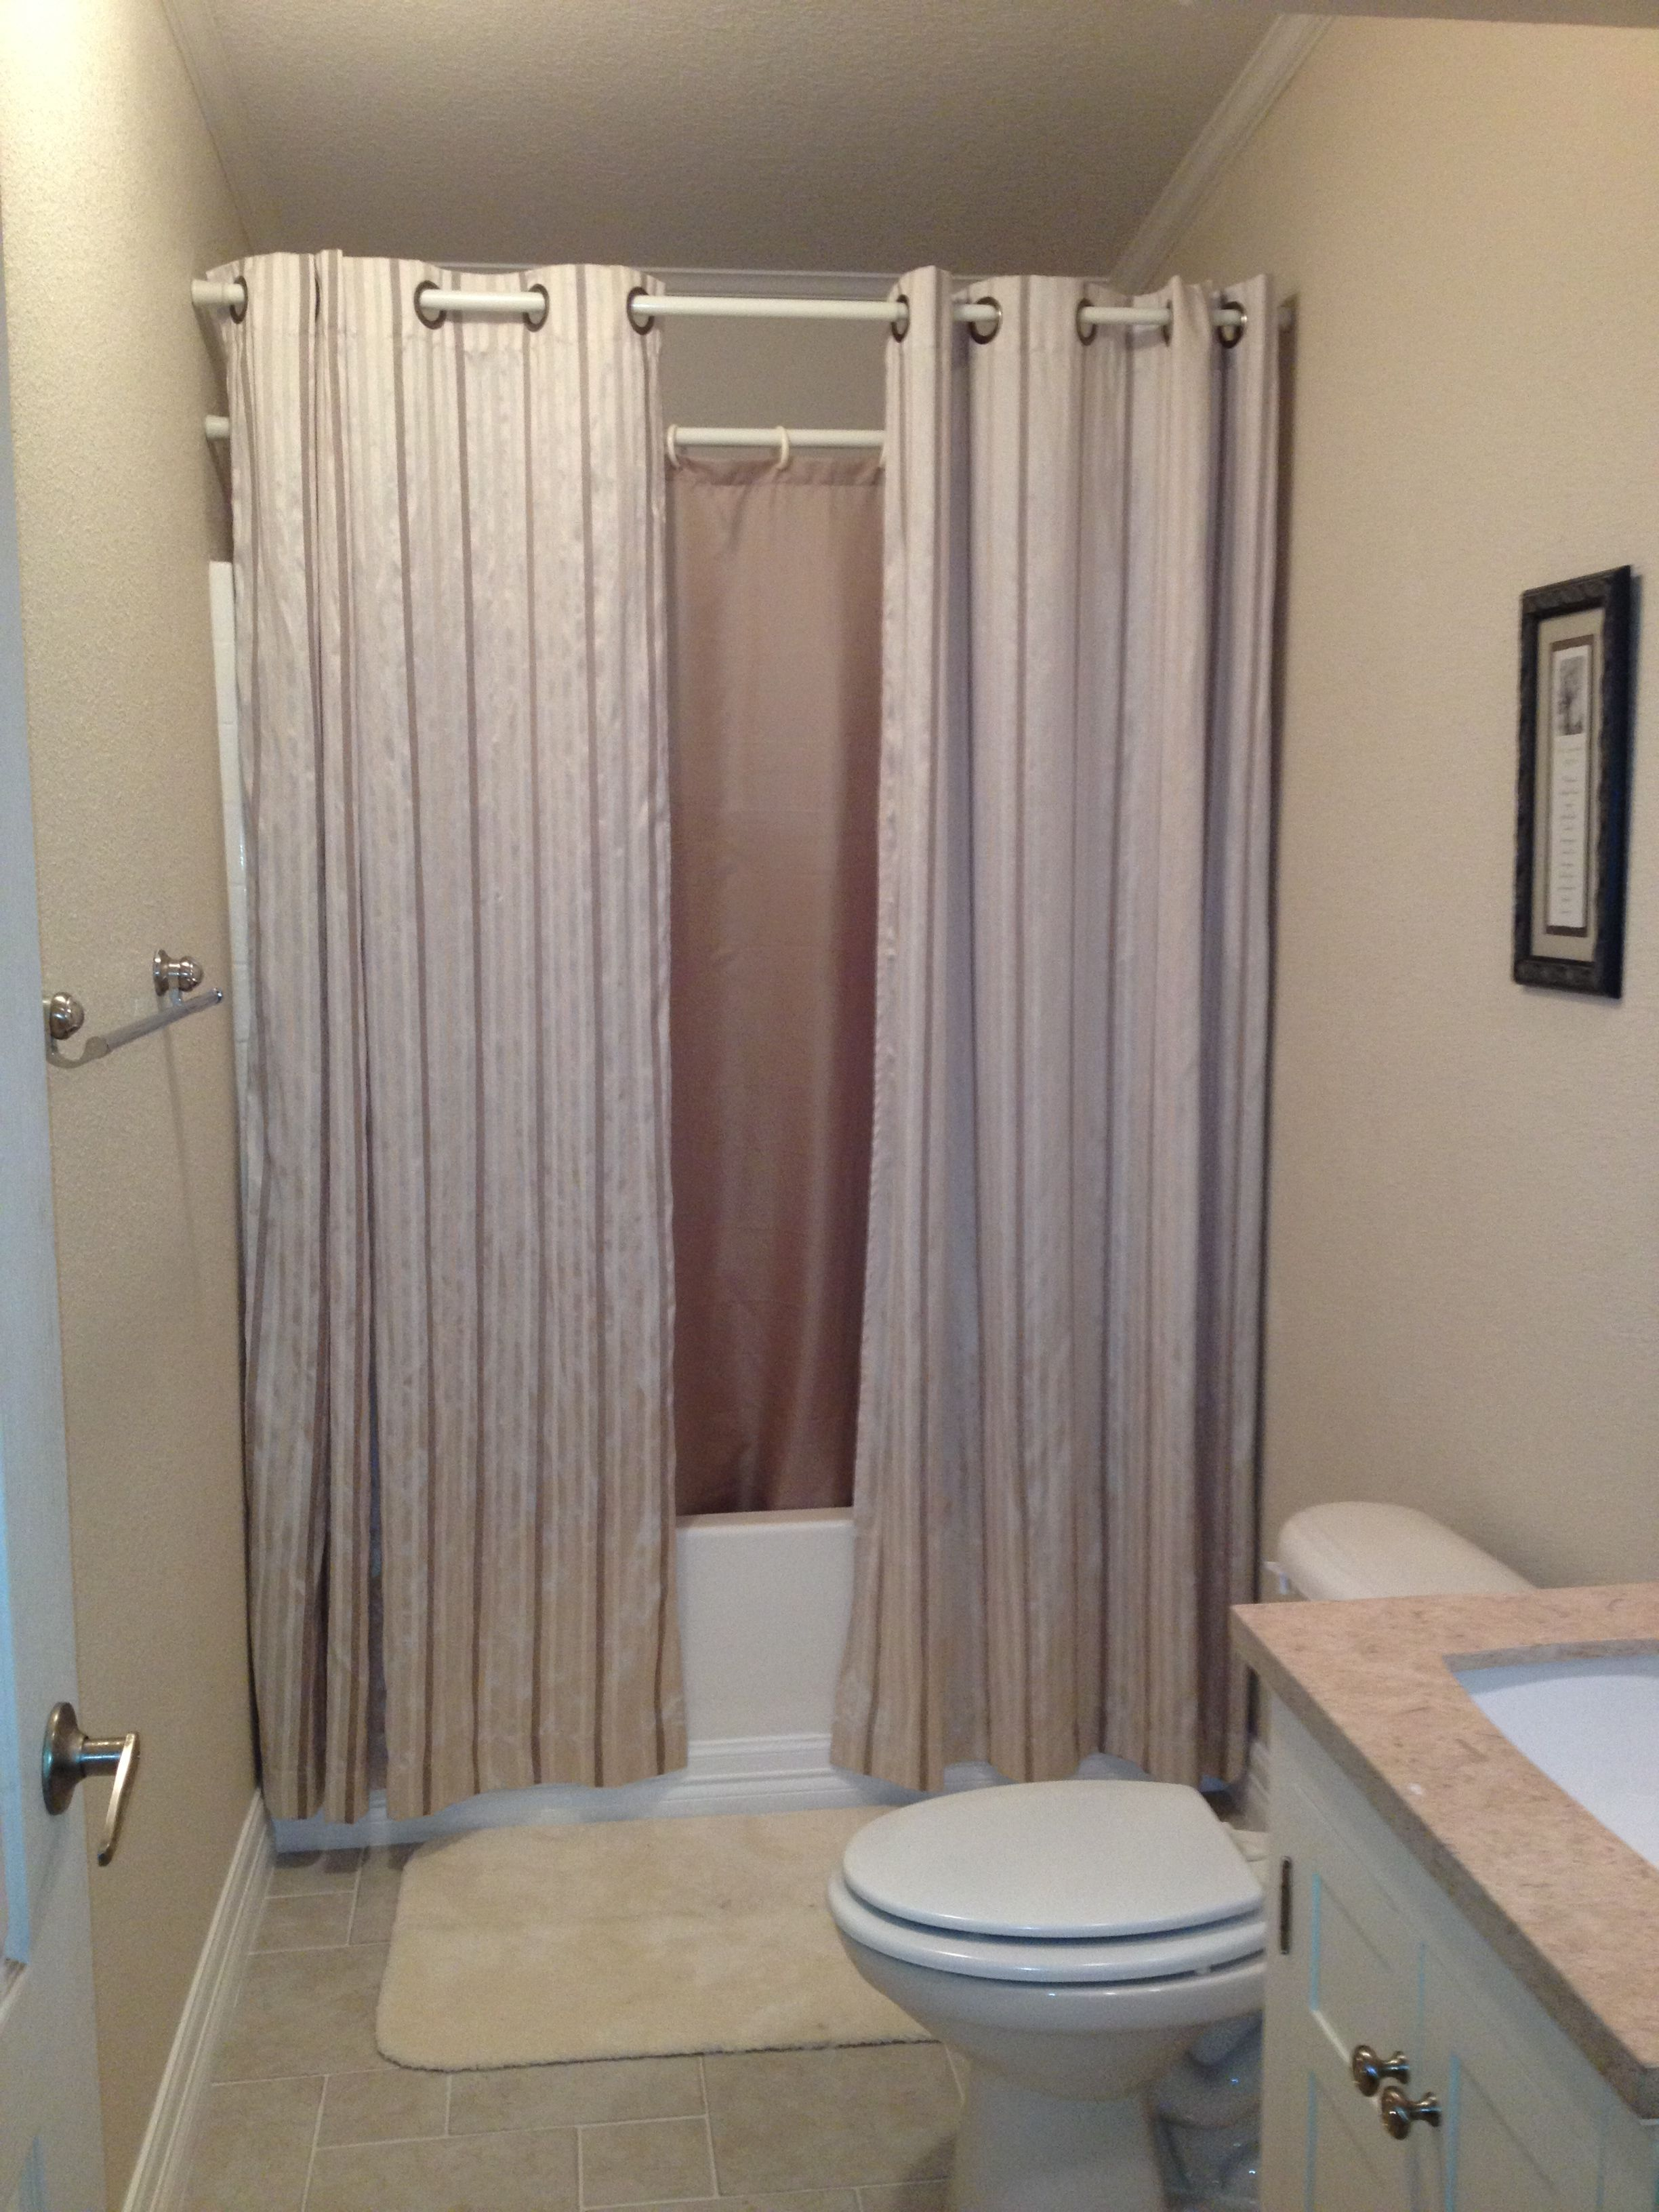 Hanging shower curtains to make small bathroom look bigger for Small bathroom high ceiling